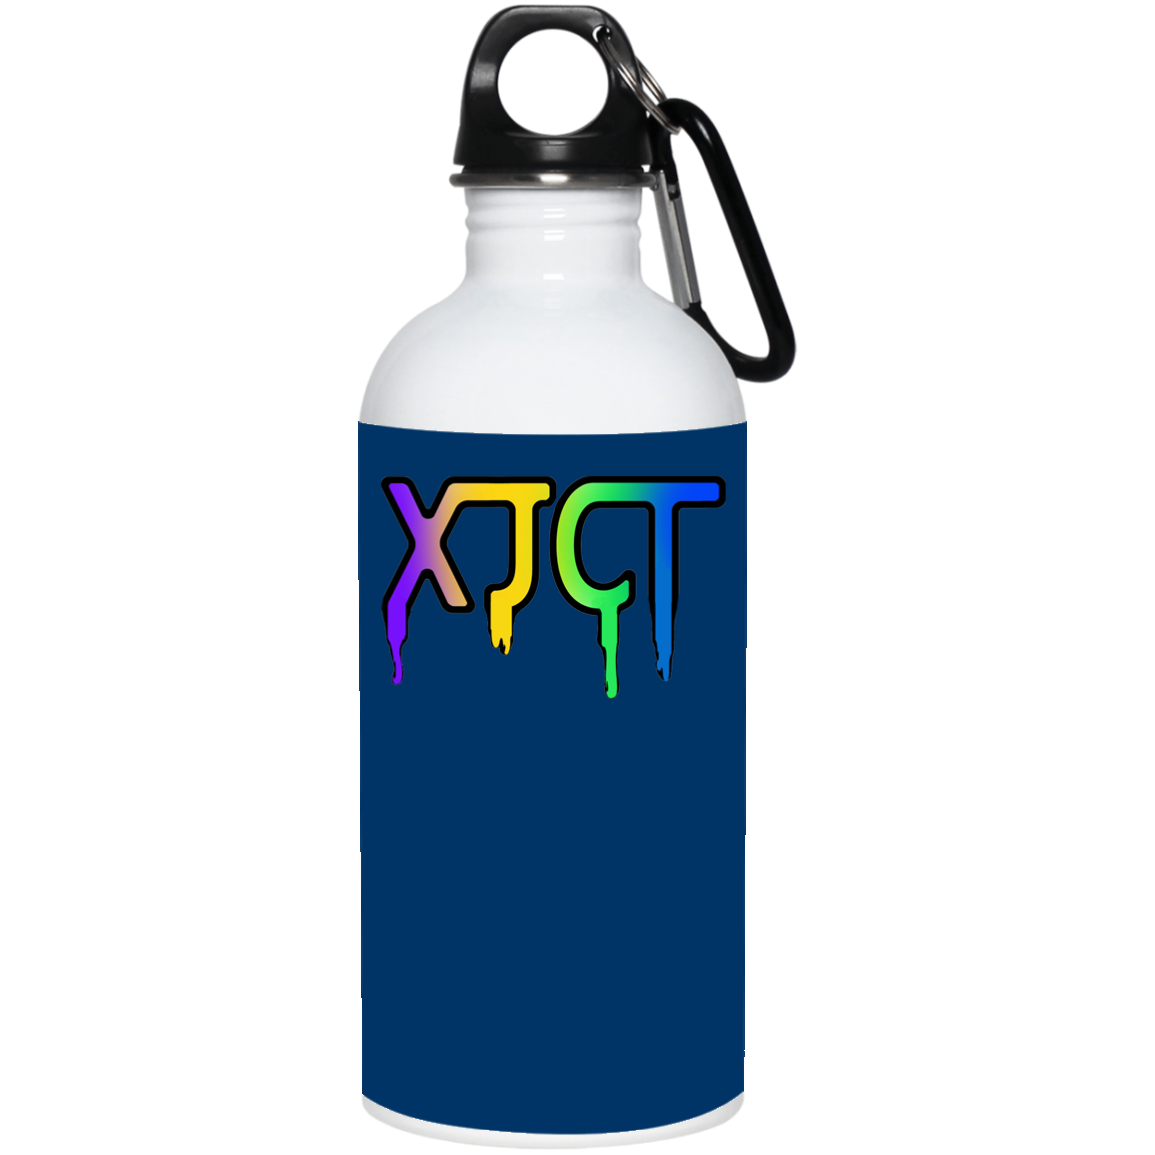 s-xj STAINLESS STEEL WATER BOTTLE